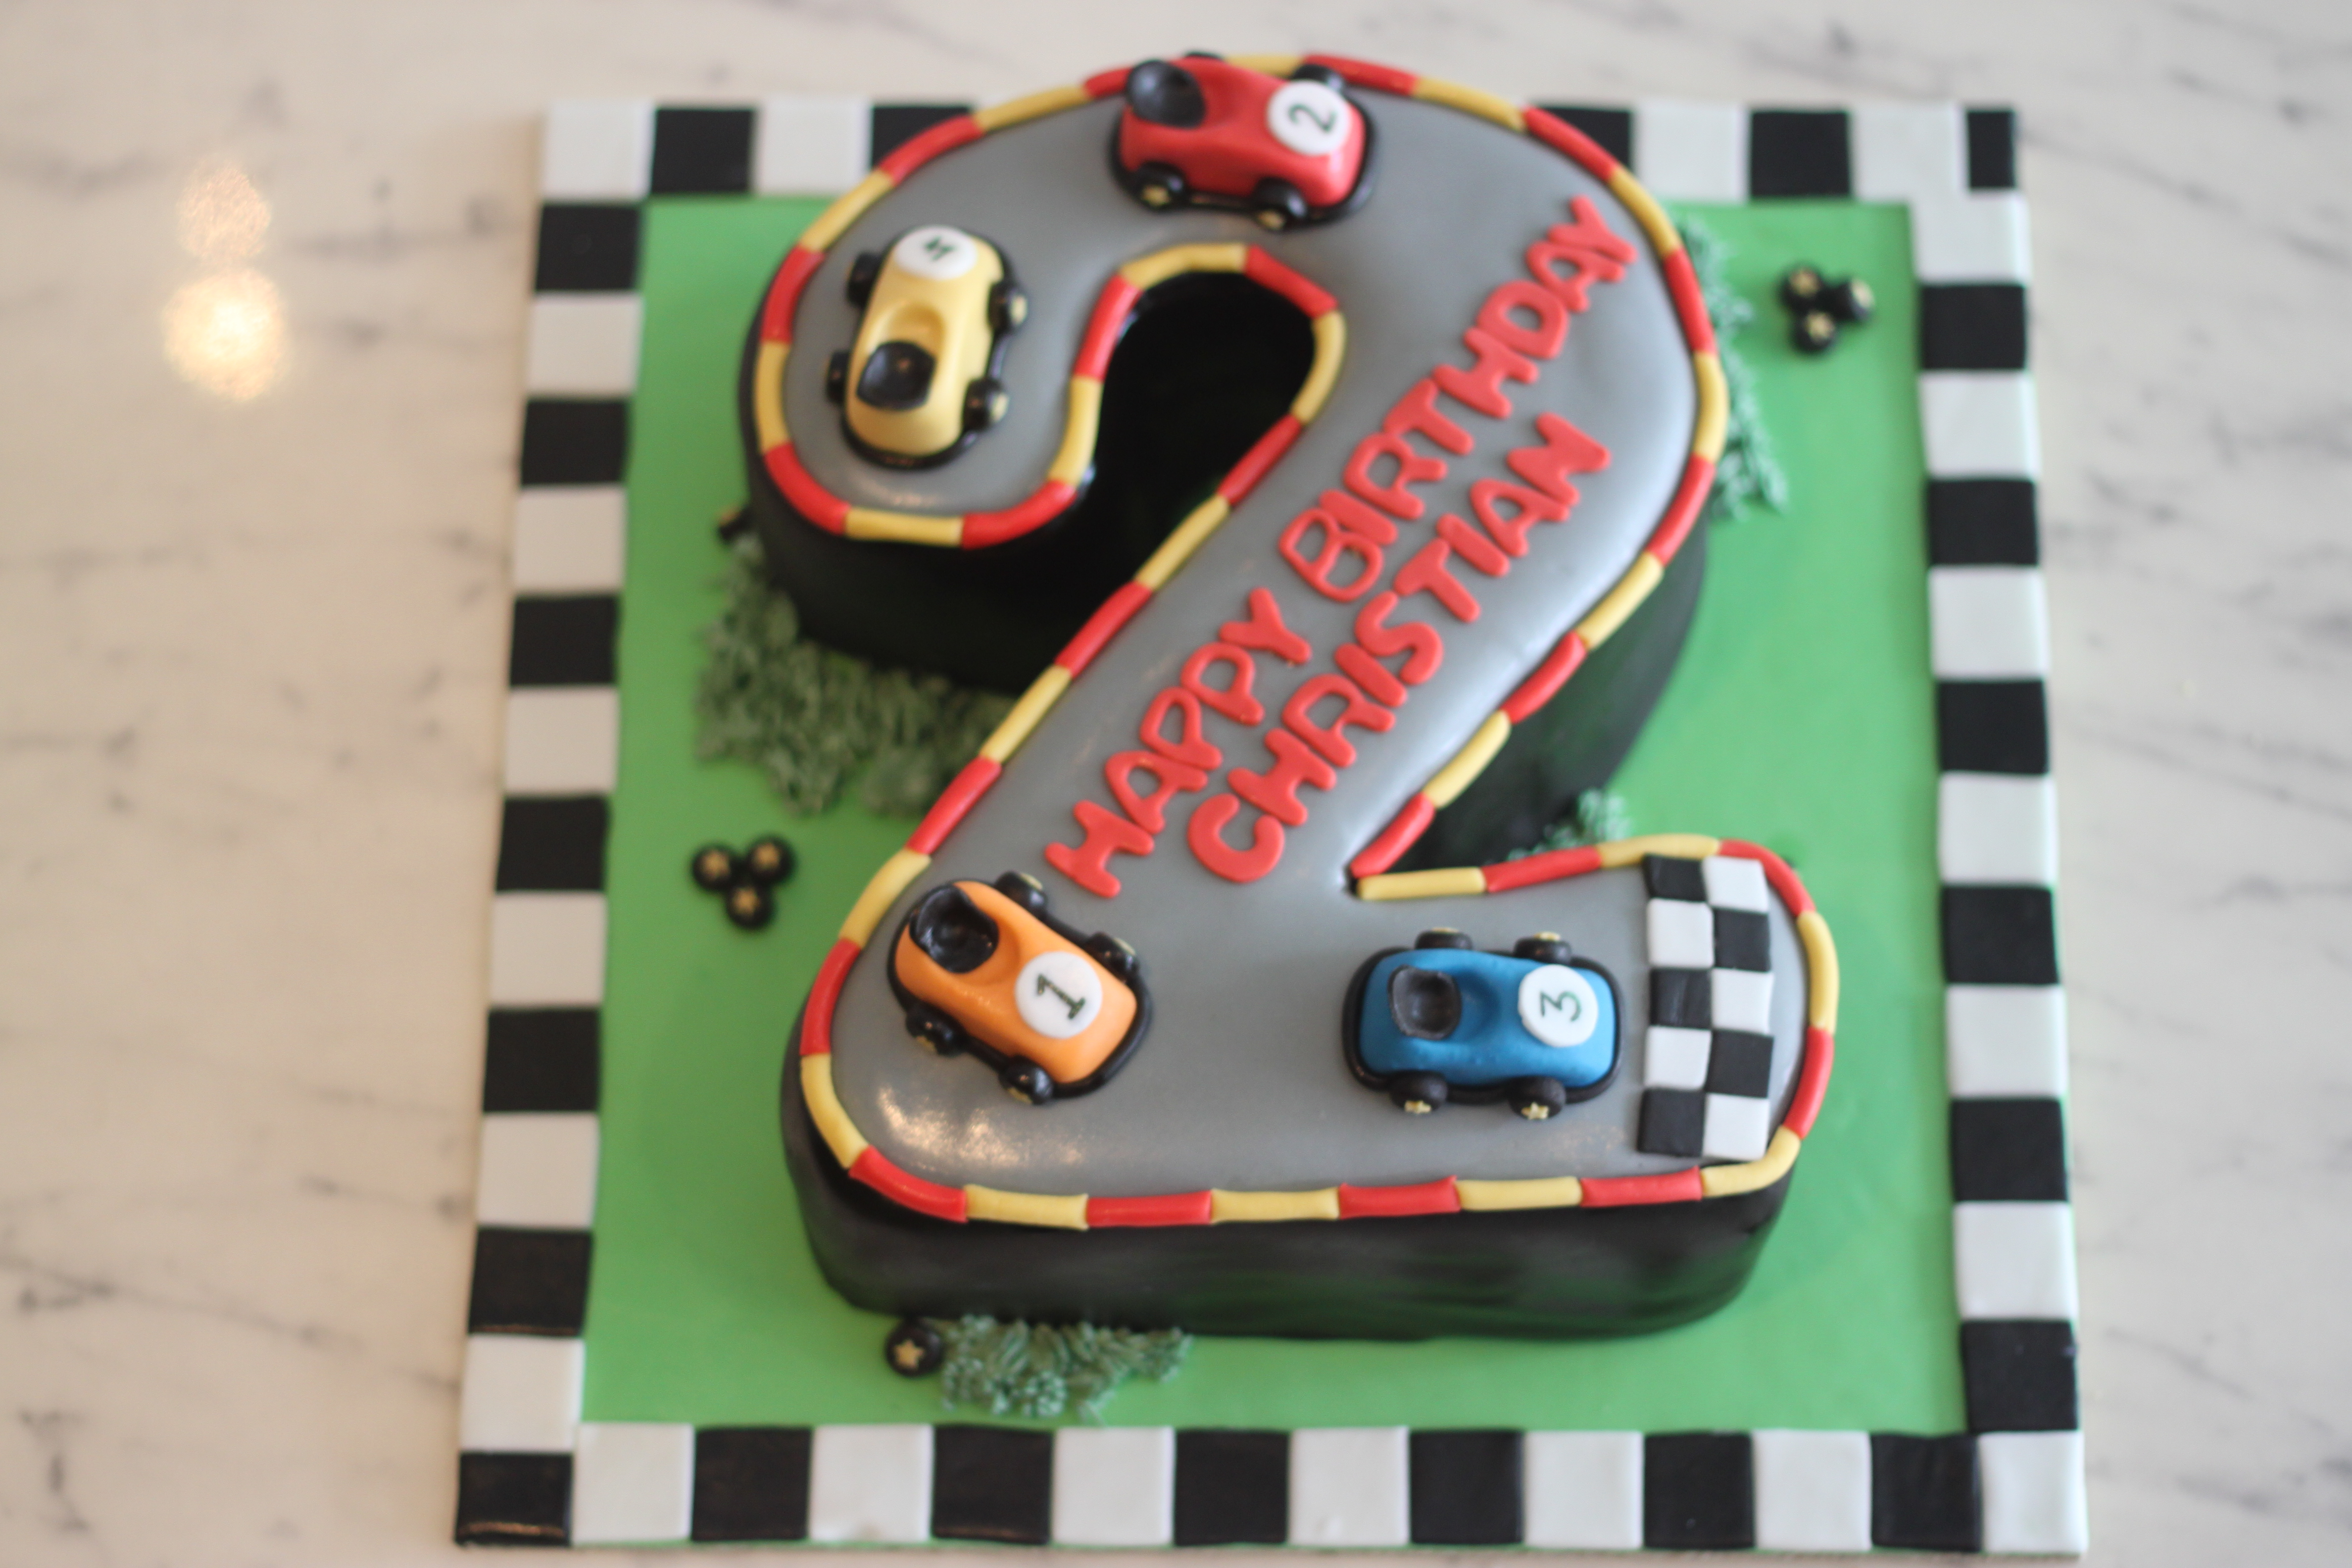 Number 2 Shaped Cakes http://muffinsareuglycupcakes.wordpress.com/2011/01/09/no-2-race-car-cake/